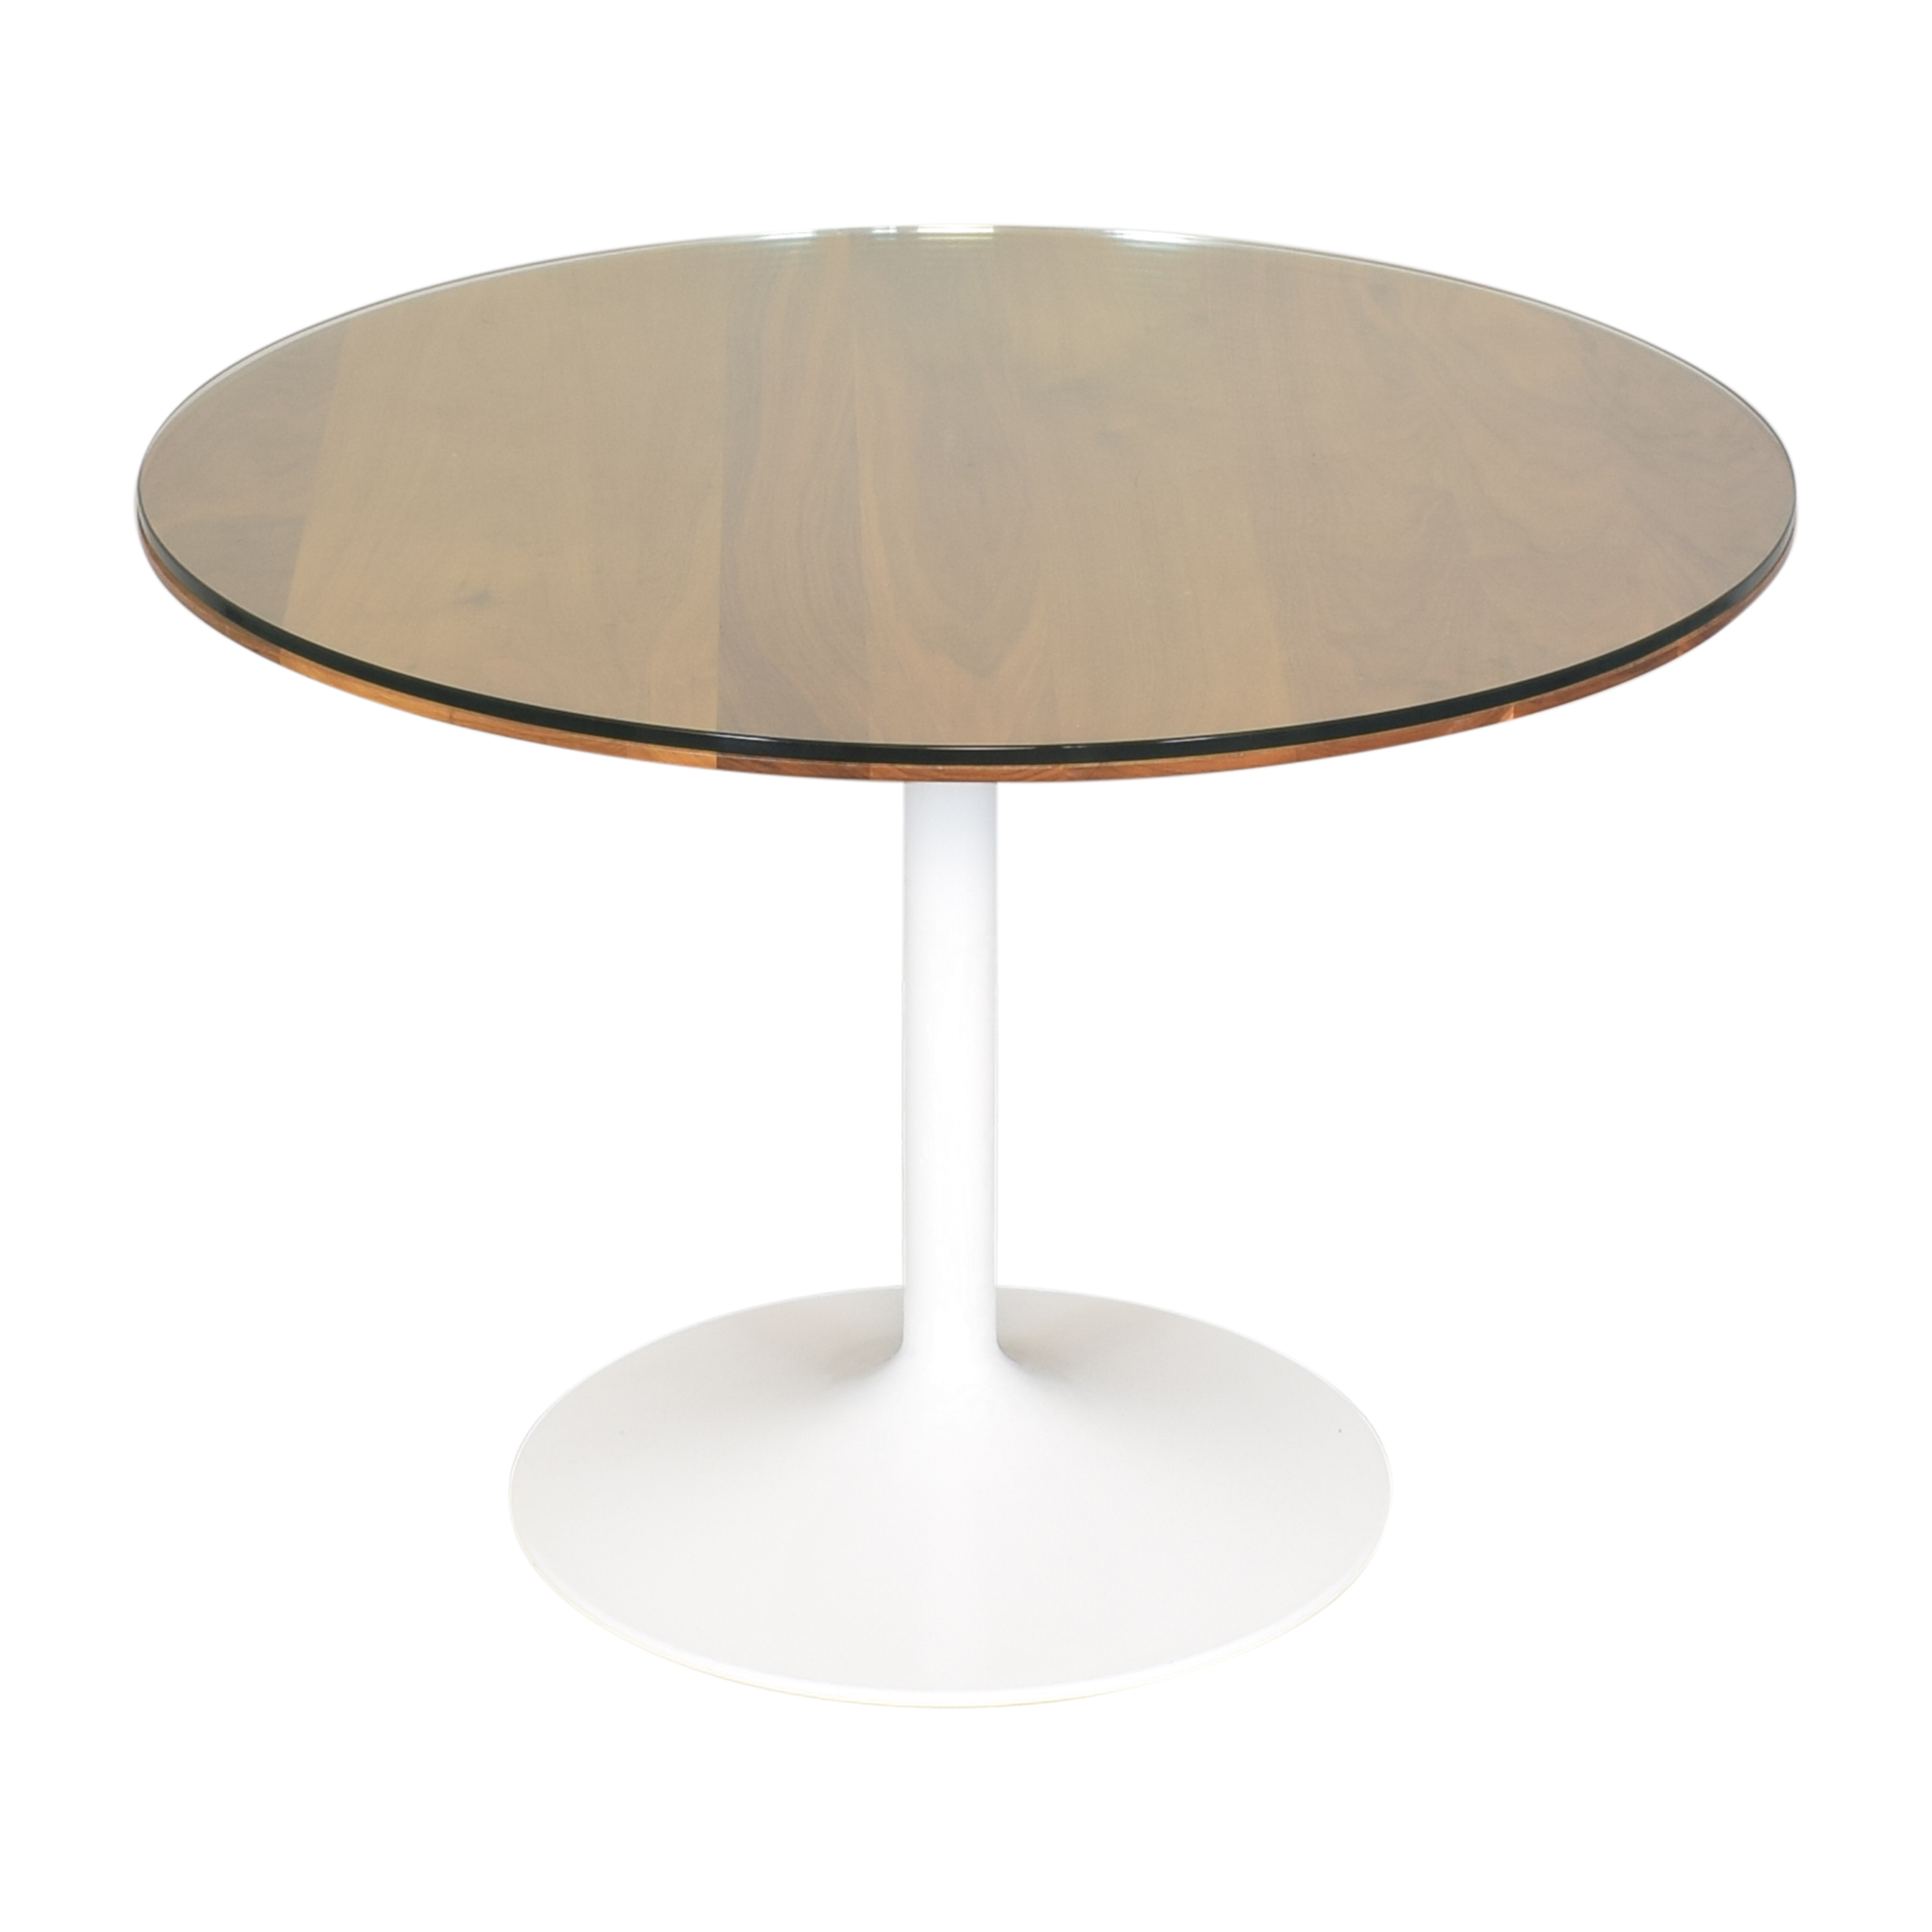 Room & Board Room & Board Aria Round Dining Table ma